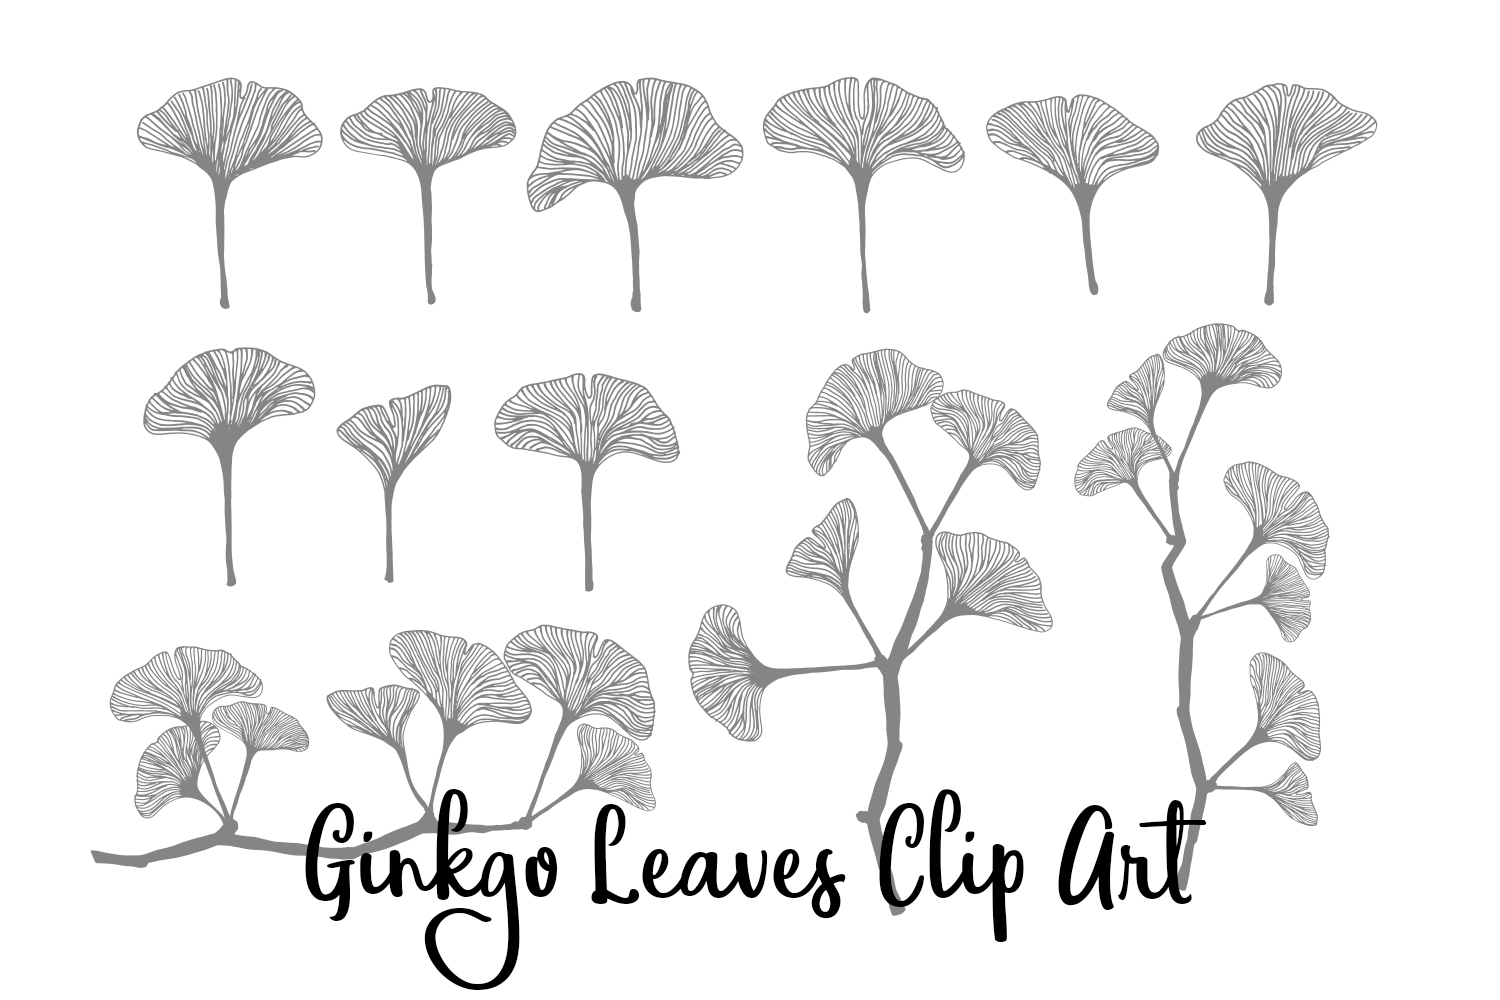 Ginkgo Leaves Clip Art, Vectors, PNGs and Digital Brushes example image 2